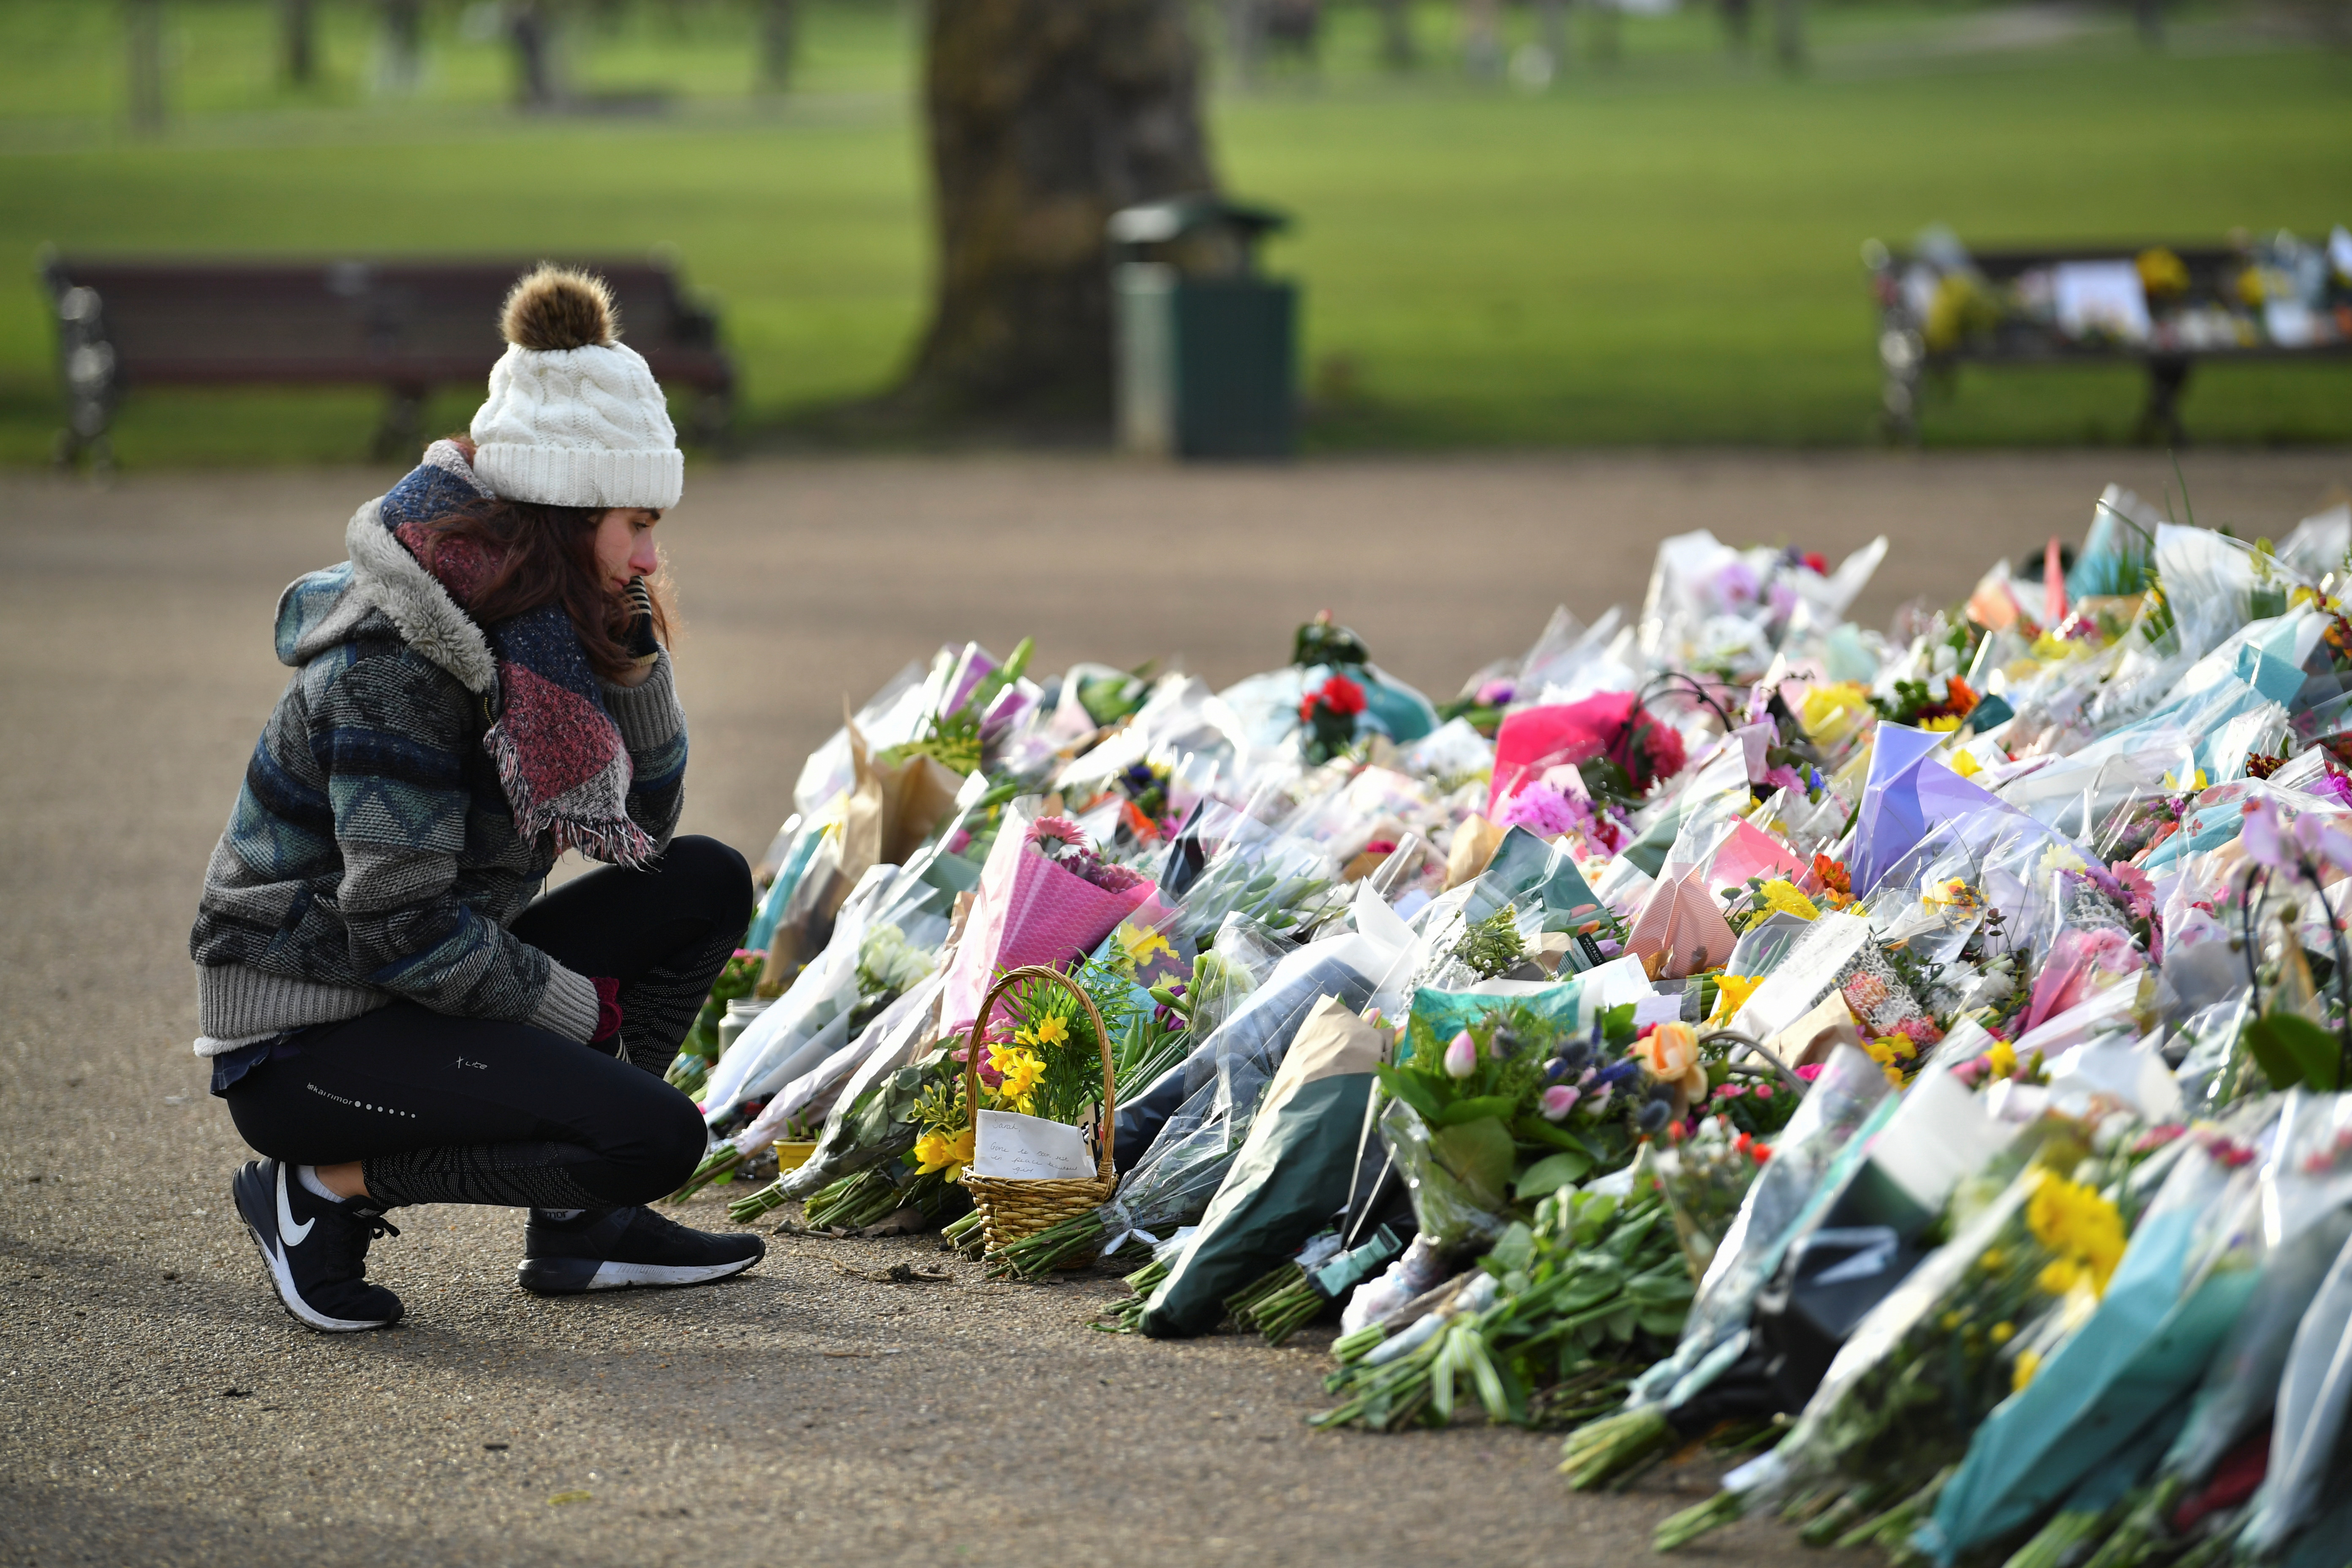 A woman reacts as she visits the memorial site at the Clapham Common Bandstand, following the kidnap and murder of Sarah Everard, in London, Britain, March 17, 2021. REUTERS/Dylan Martinez